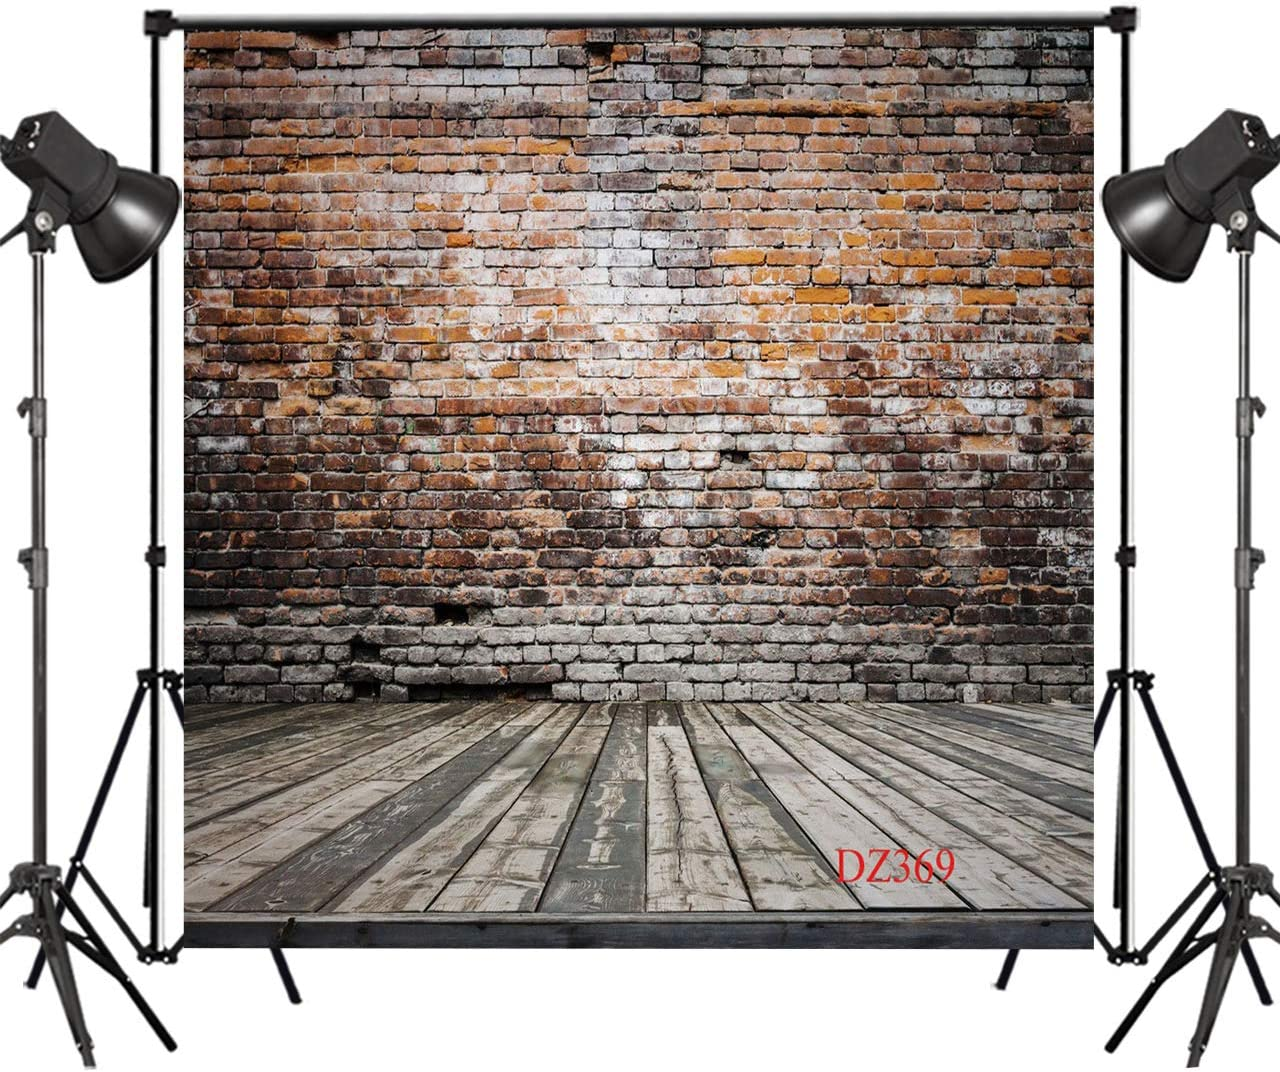 LB Vintage Brick Wall Backdrops for Photography 10x10ft Rustic Wood Floor Photo Background Birthday Party Decorations Customized Portrait Photo Shoot Studio Props DZ369